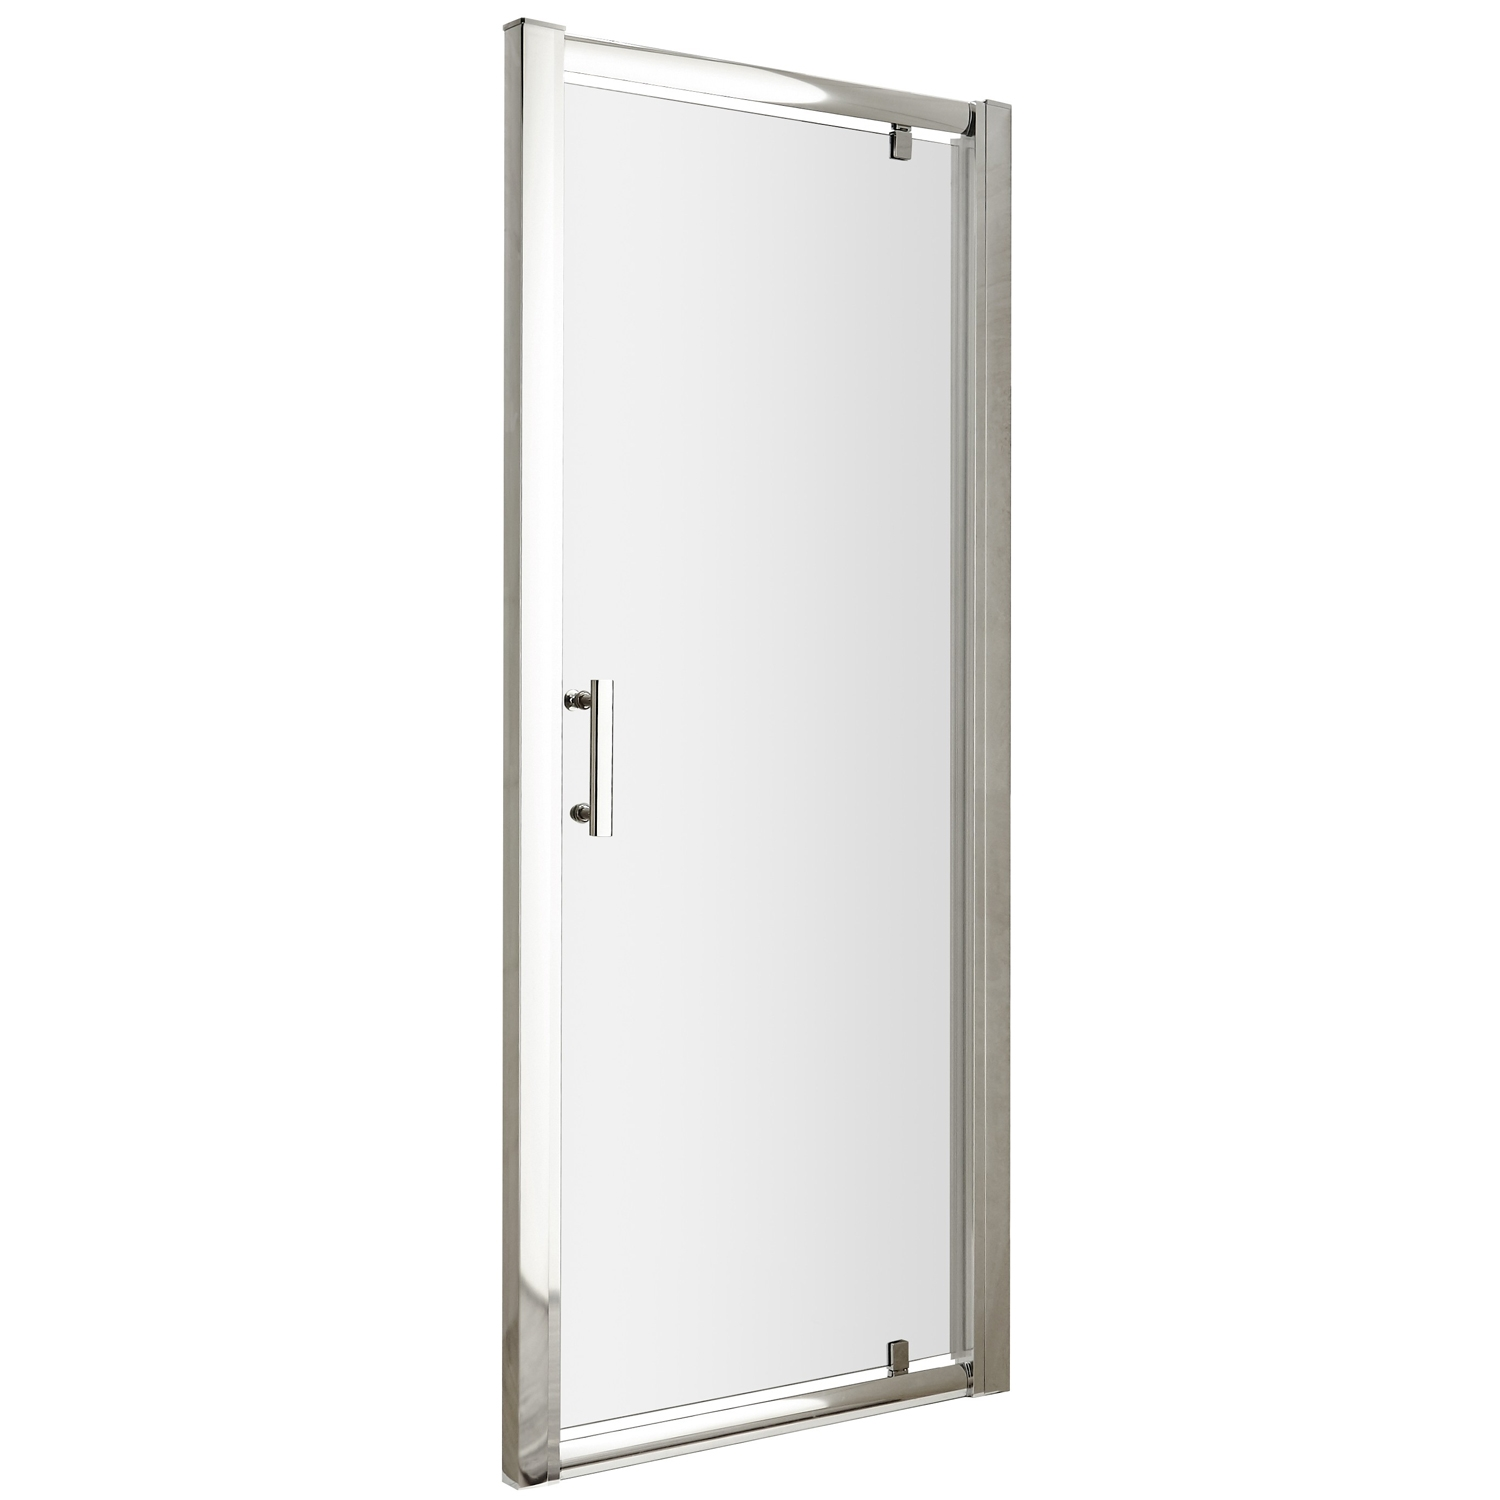 Premier Pacific Pivot Shower Door 700mm Wide - 6mm Glass